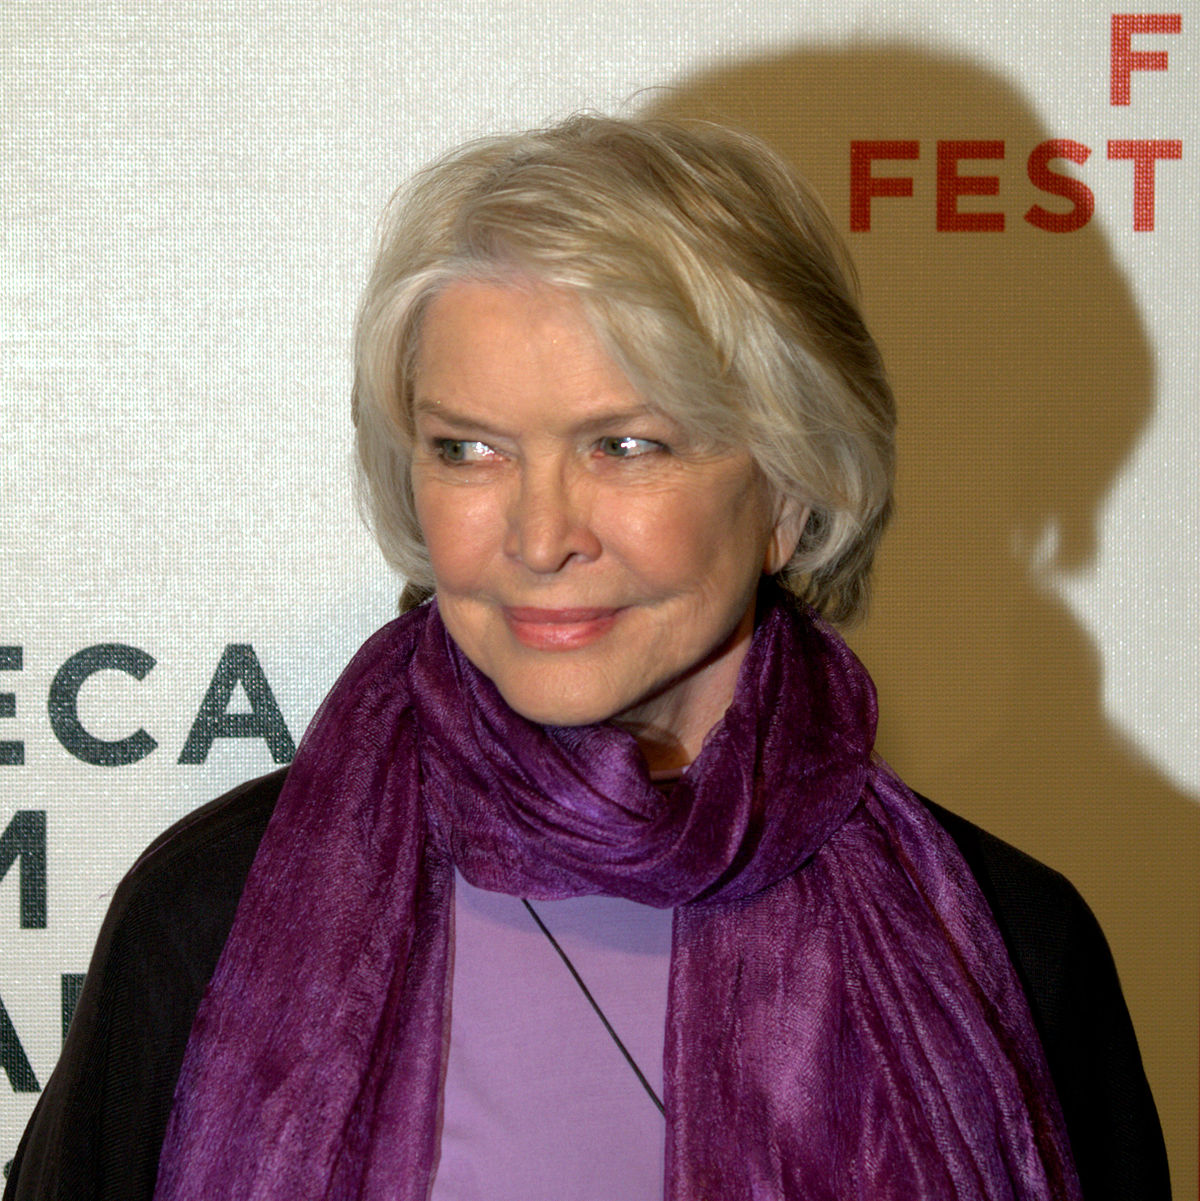 ellen burstyn wikip dia. Black Bedroom Furniture Sets. Home Design Ideas